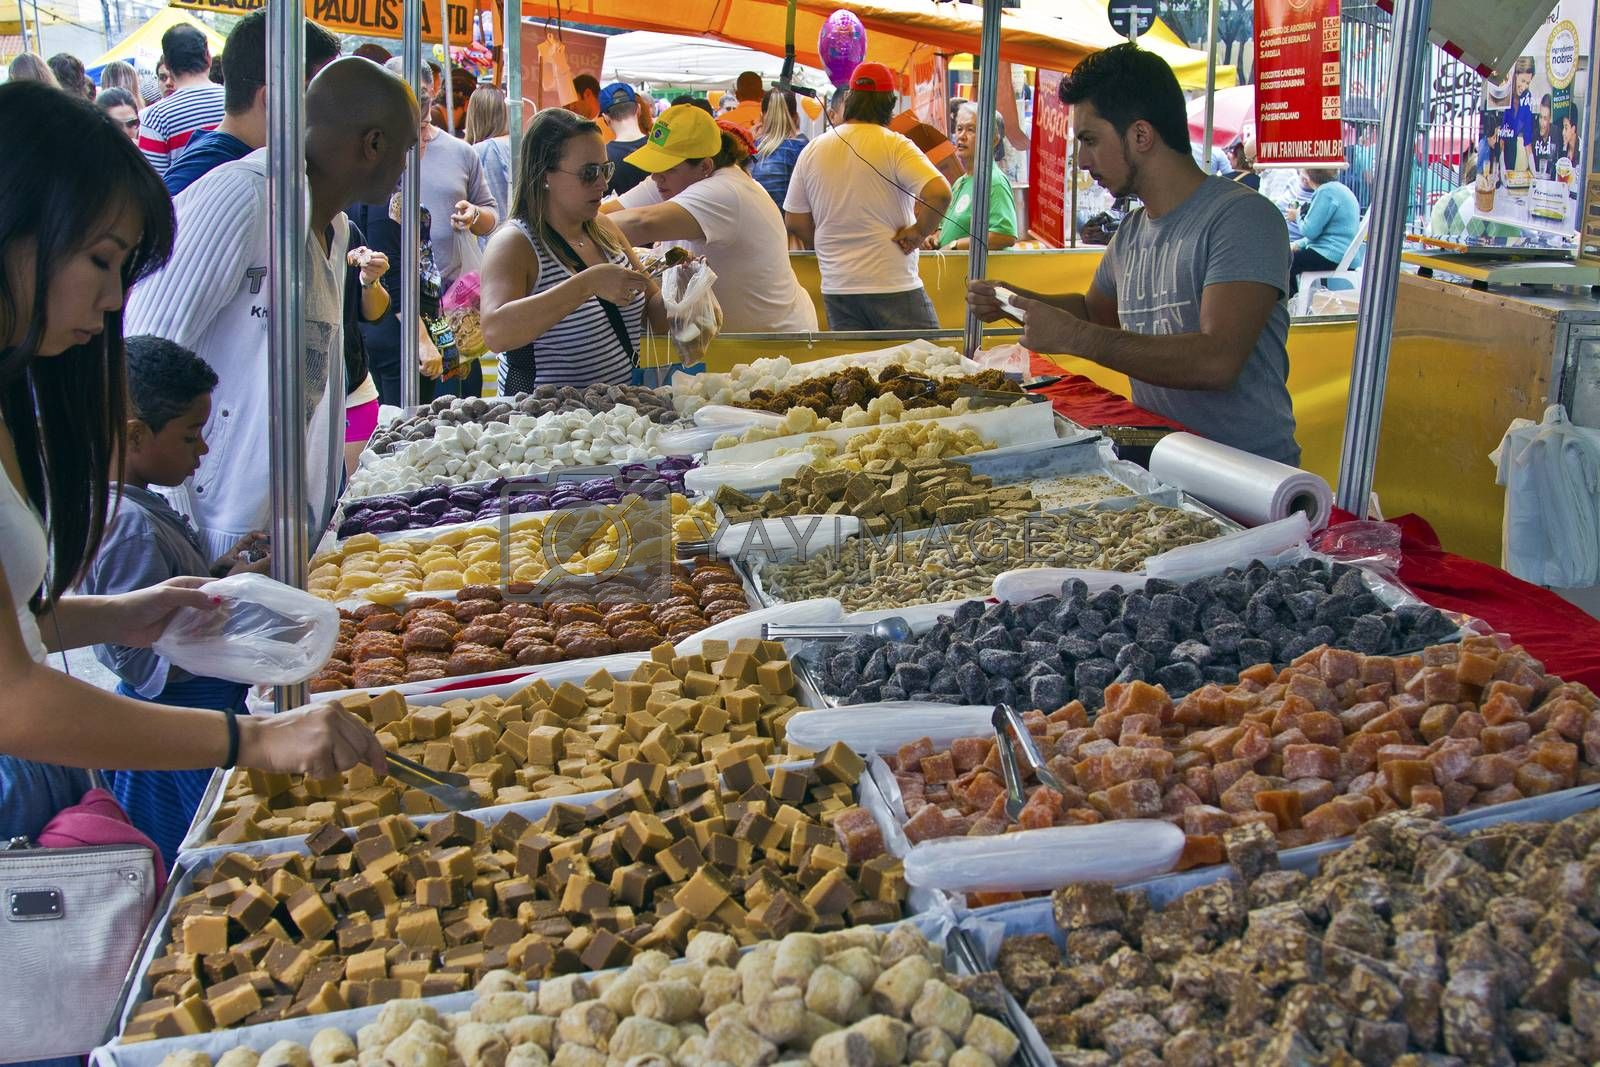 SAO PAULO, BRAZIL - MAY 17, 2015: An unidentified group of people in the hand made sweet stand at a street fair market in Sao Paulo.